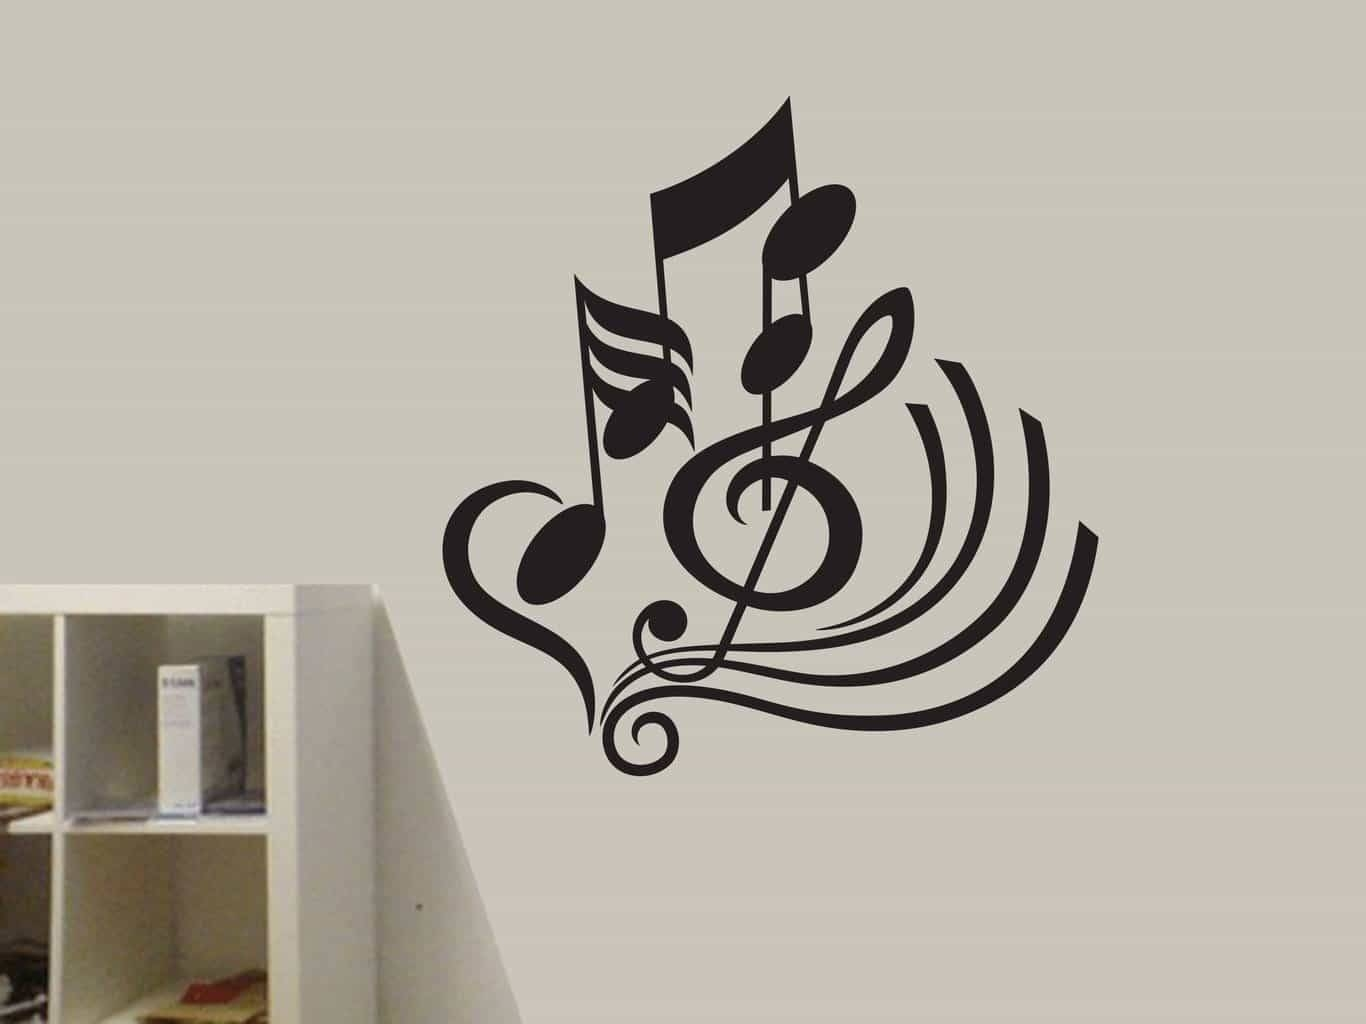 Musical Notes Wall Art Decal Sticker In Best And Newest Music Note Art For Walls (View 18 of 25)